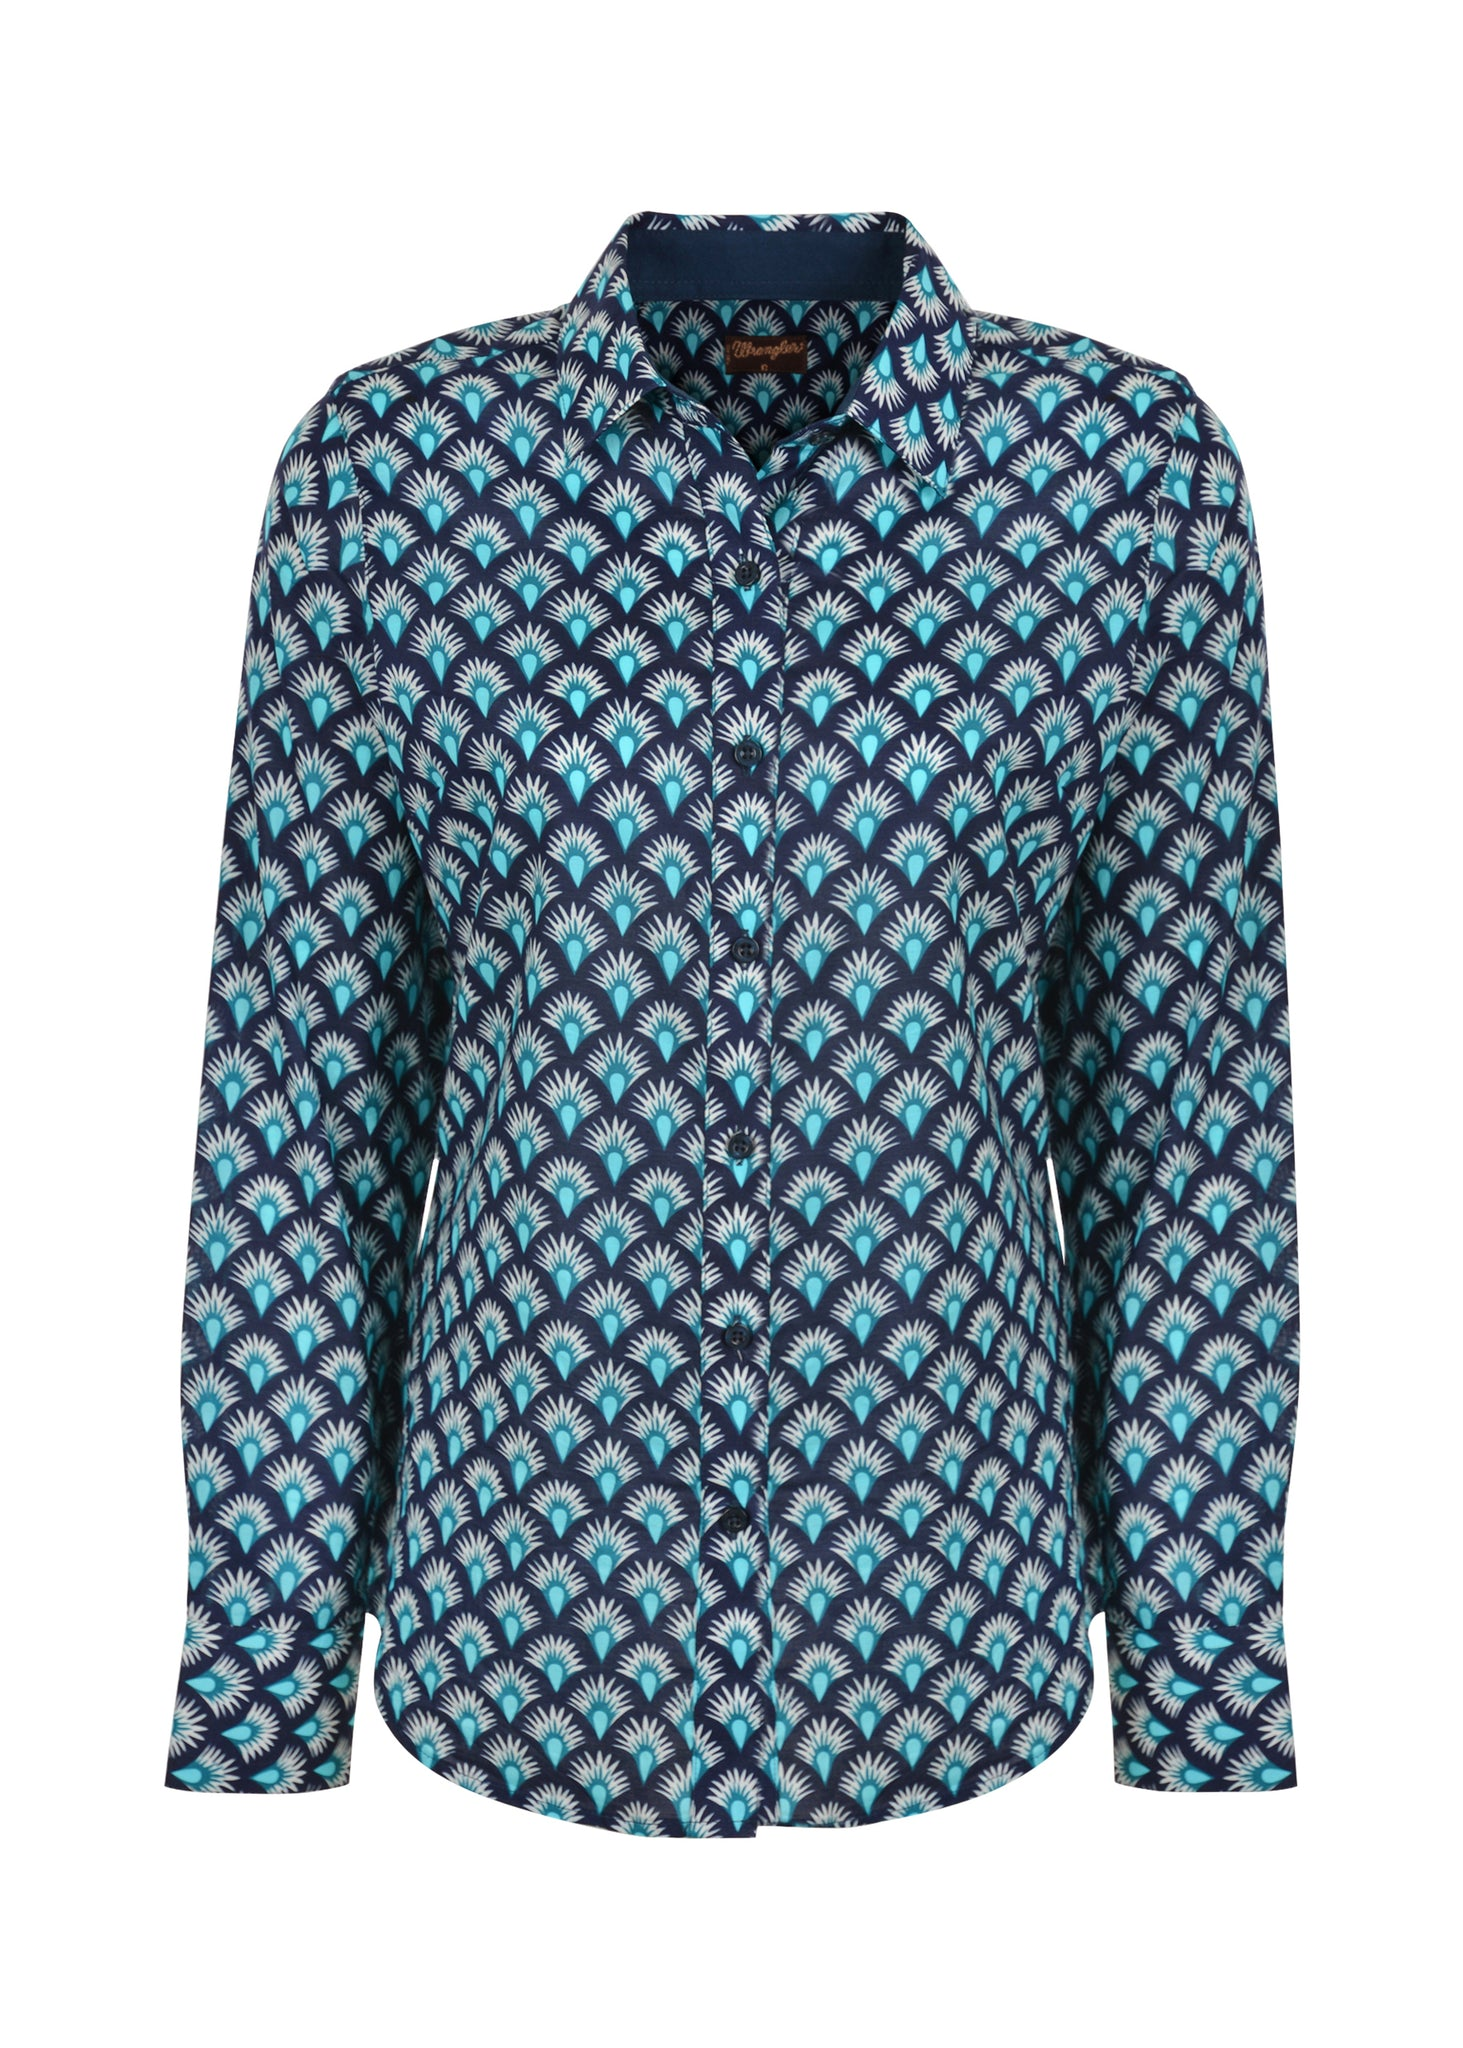 X0S2126558 Wrangler Women's Jade Print Long Sleeve Shirt